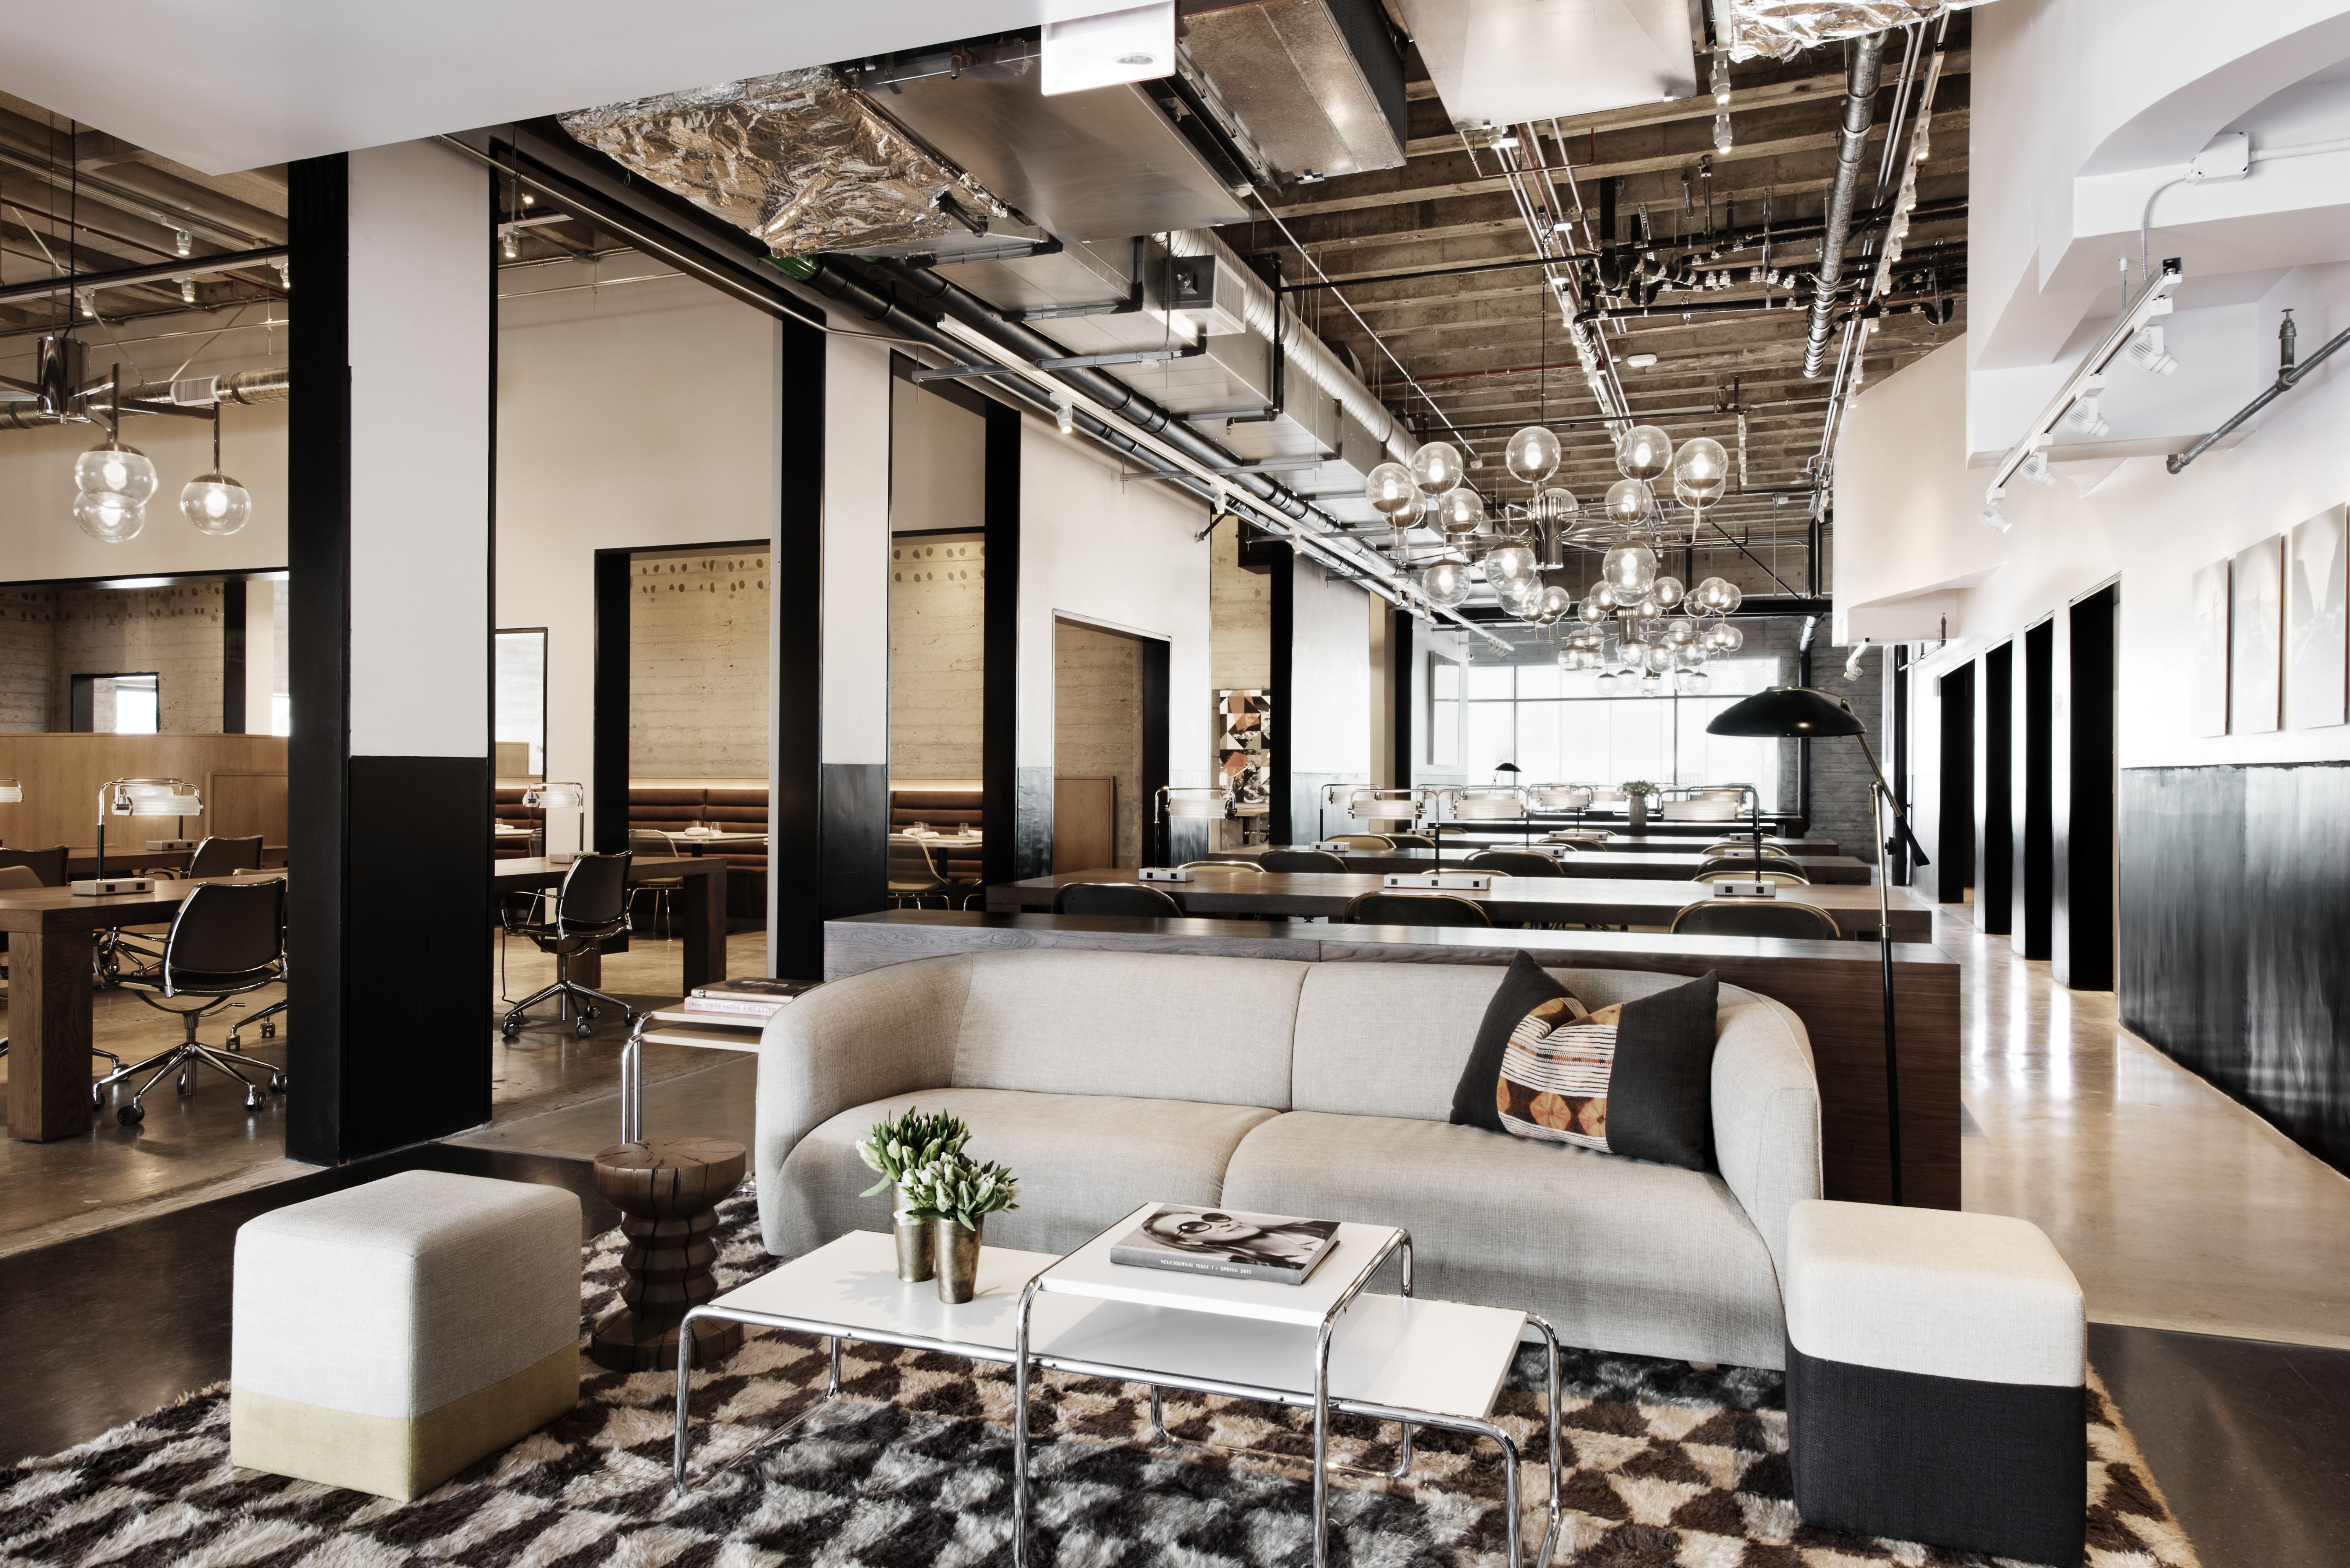 creative office spaces. NeueHouse Opens A Creative Work Space In L.A Office Spaces